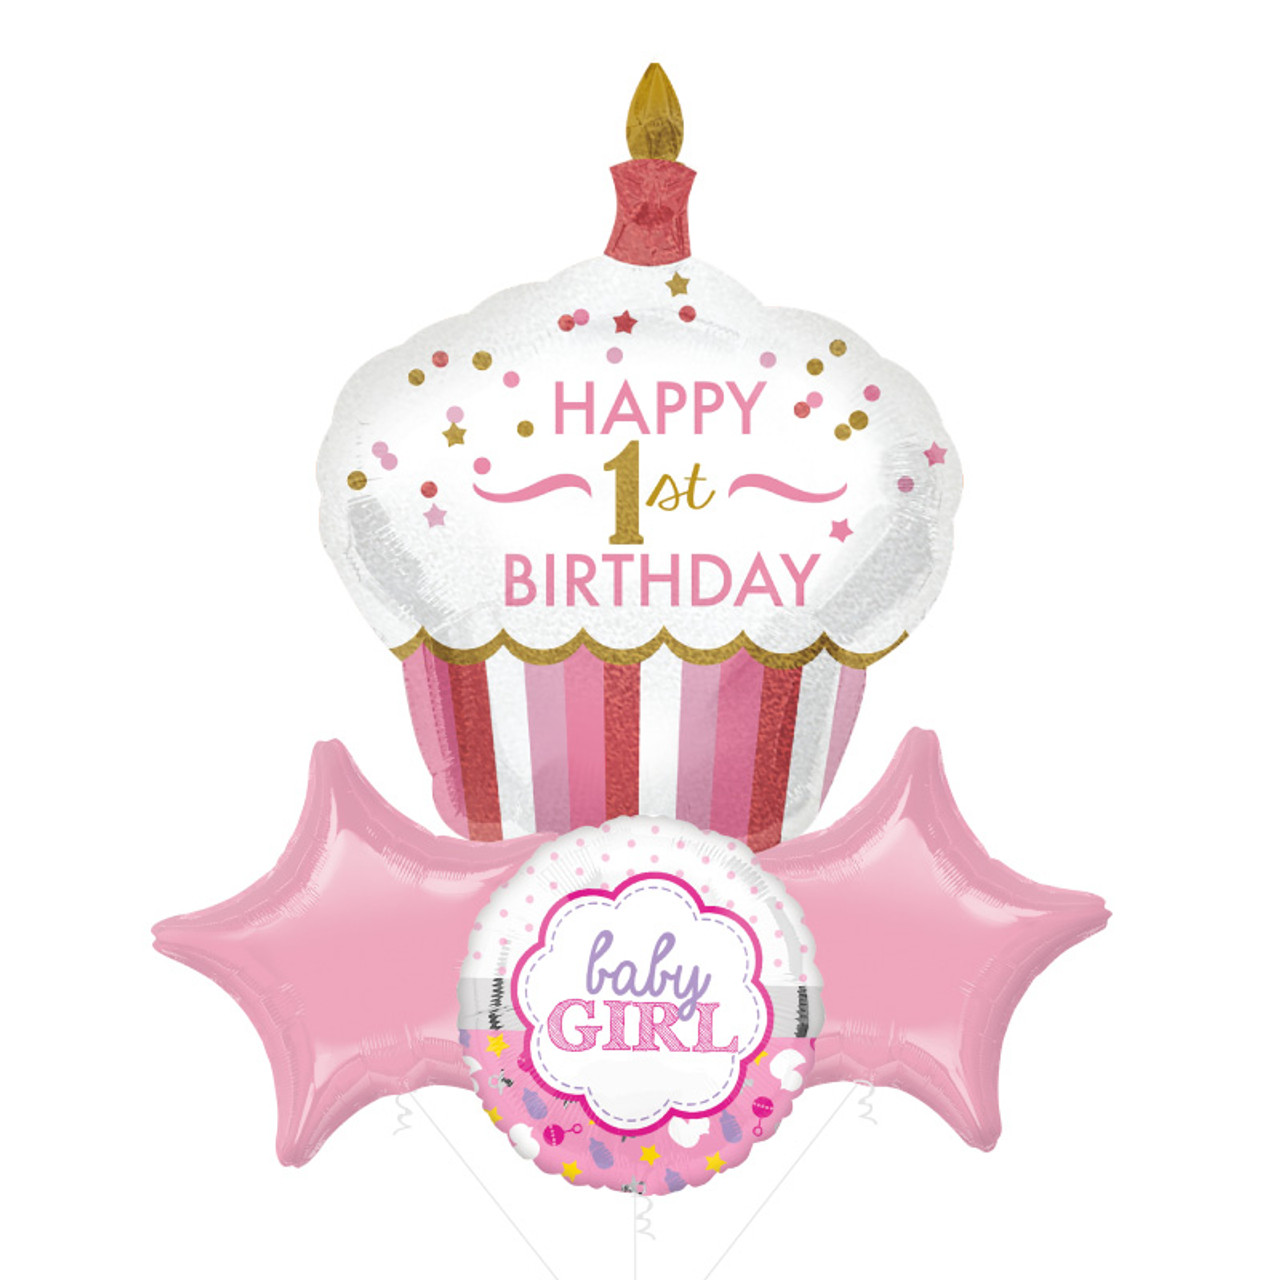 [Party] Happy 1st Birthday Cupcake Girl Star Foil Balloons